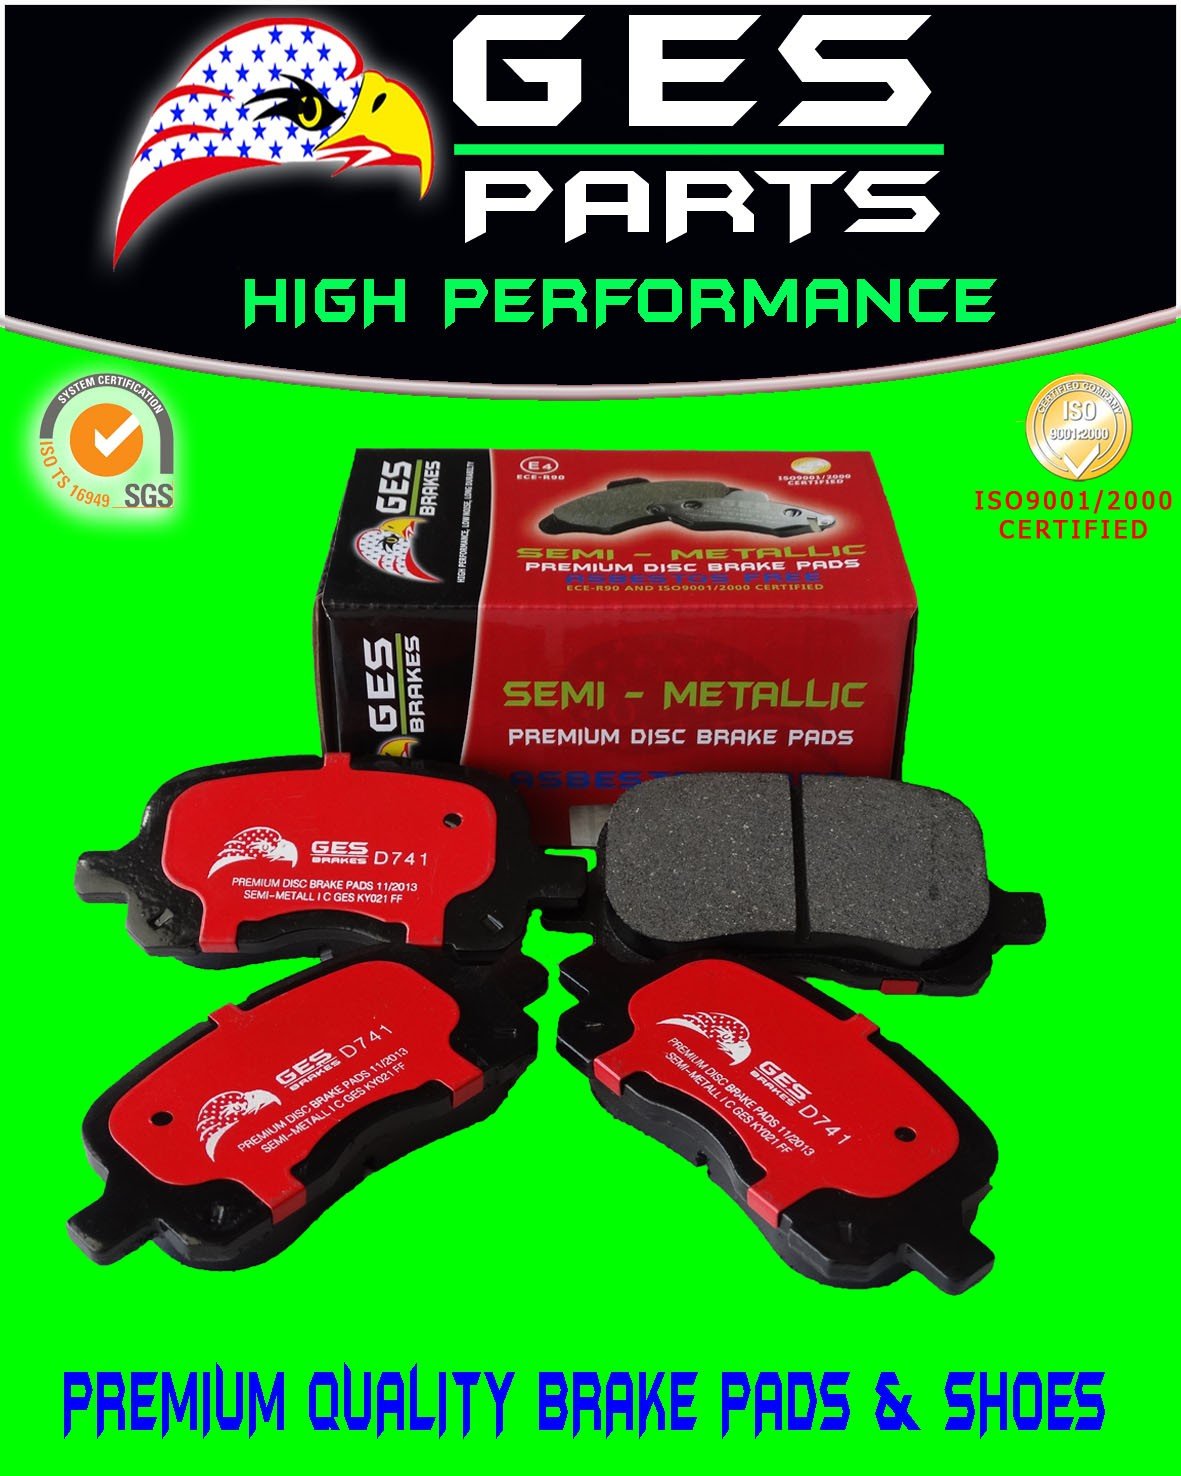 98-02 Toyota Corolla & Chevrolet Prizm Premium Quality Front Brake Pads D741